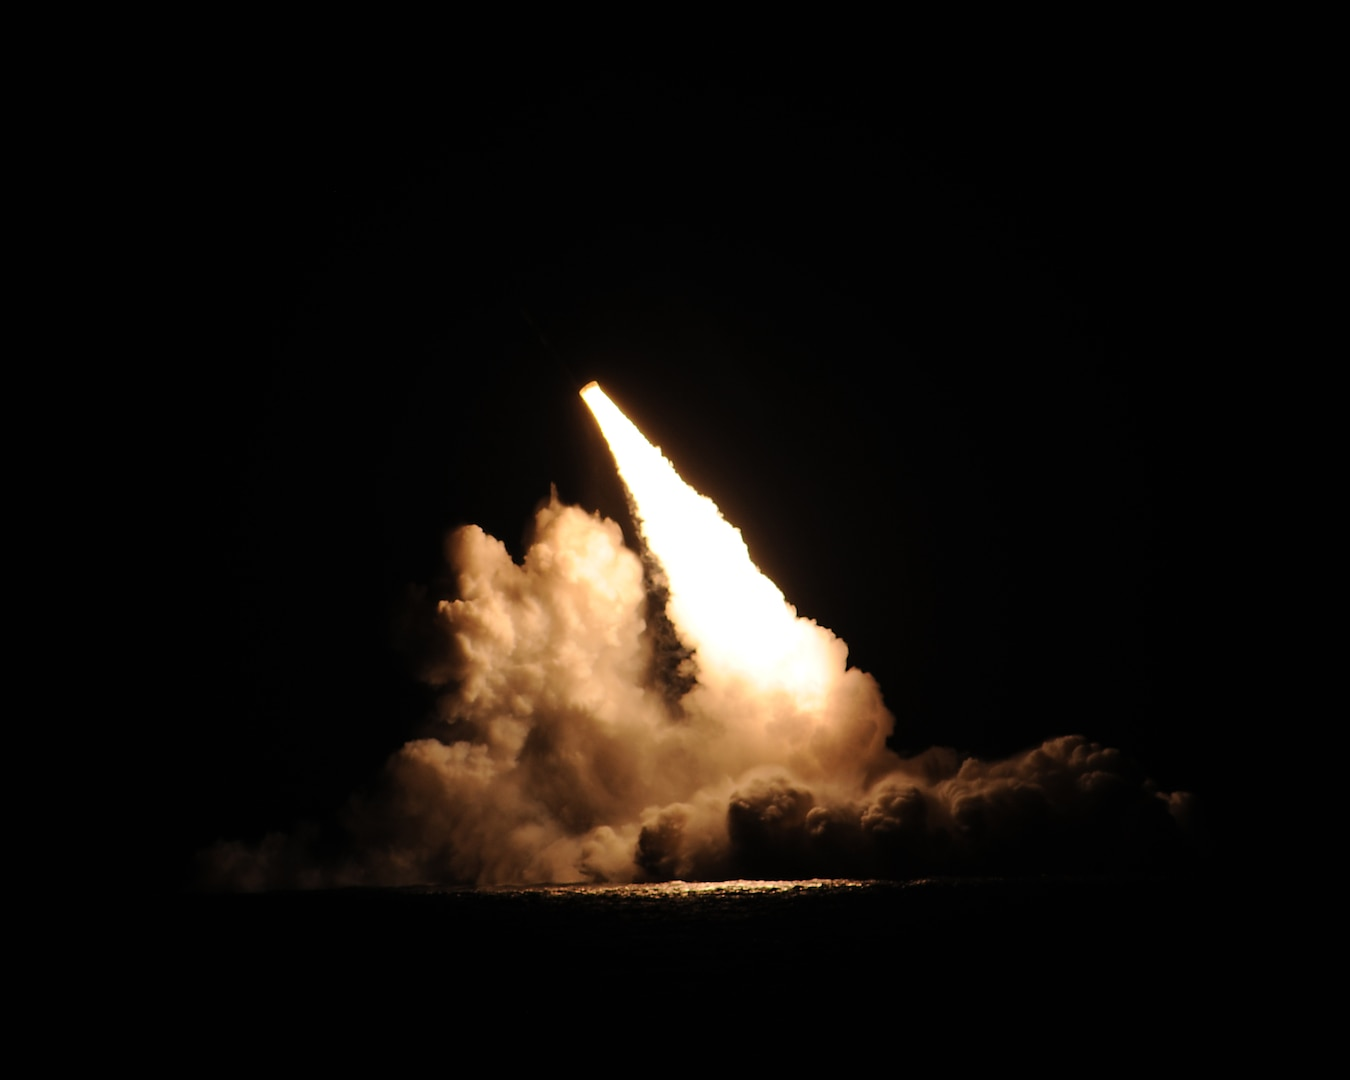 DASO 26_DSC4938 _151105 (Nov. 7, 2015) A trident II D-5 ballistic missile is launched from the Ohio-class ballistic missile submarine USS Kentucky (SSBN 737) during a missile test at the Pacific Test Range, Nov. 7, 2015. The launch, the 156th successful test flight of an unarmed Trident II D5 missile, was part of a Demonstration and Shakedown Operation (DASO) in the Pacific Test Range to validate the readiness and effectiveness of an SSBN's crew and weapon system. Strategic weapons tests, along with exercises and operations, demonstrate the readiness of the nation's nuclear triad, assuring America's allies and deterring potential adversaries.  One of nine DoD unified combatant commands, USSTRATCOM has global strategic missions, assigned through the Unified Command Plan, which include strategic deterrence; space operations; cyberspace operations; joint electronic warfare; global strike; missile defense; intelligence, surveillance and reconnaissance; combating weapons of mass destruction; and analysis and targeting. (U.S. Navy photo/Released)